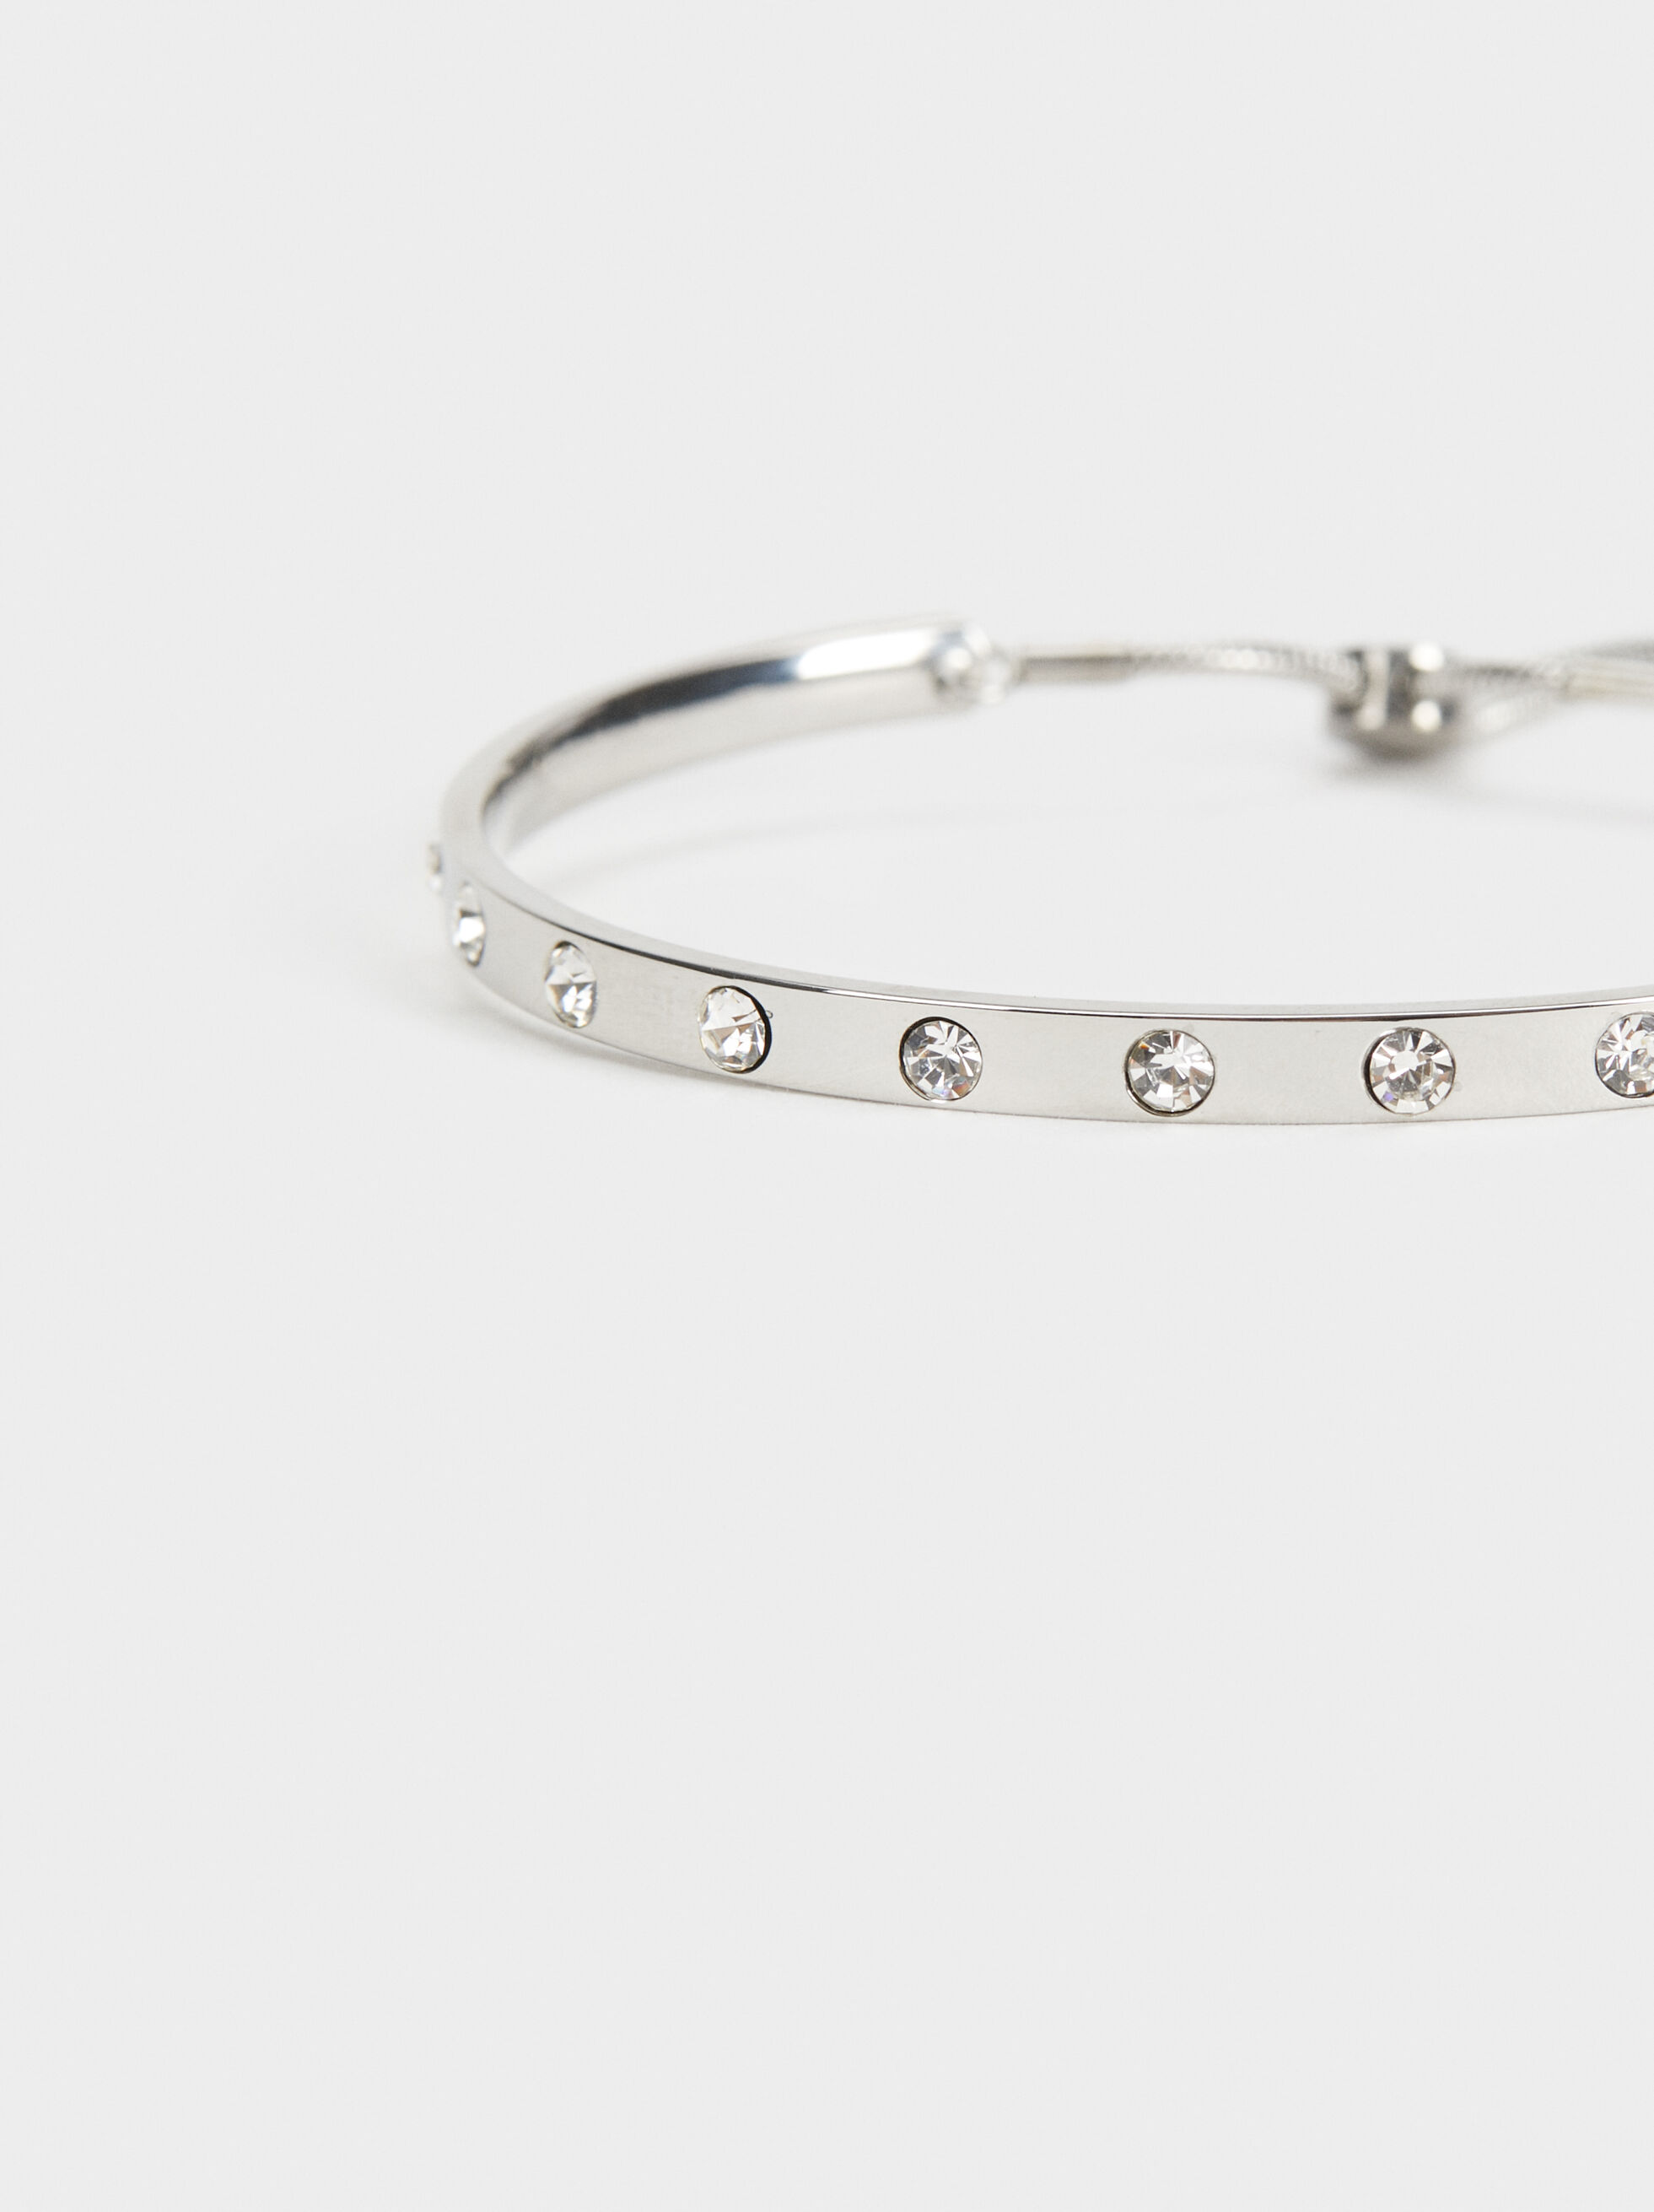 Steel Adjustable Bracelet With Rhinestones, Silver, hi-res